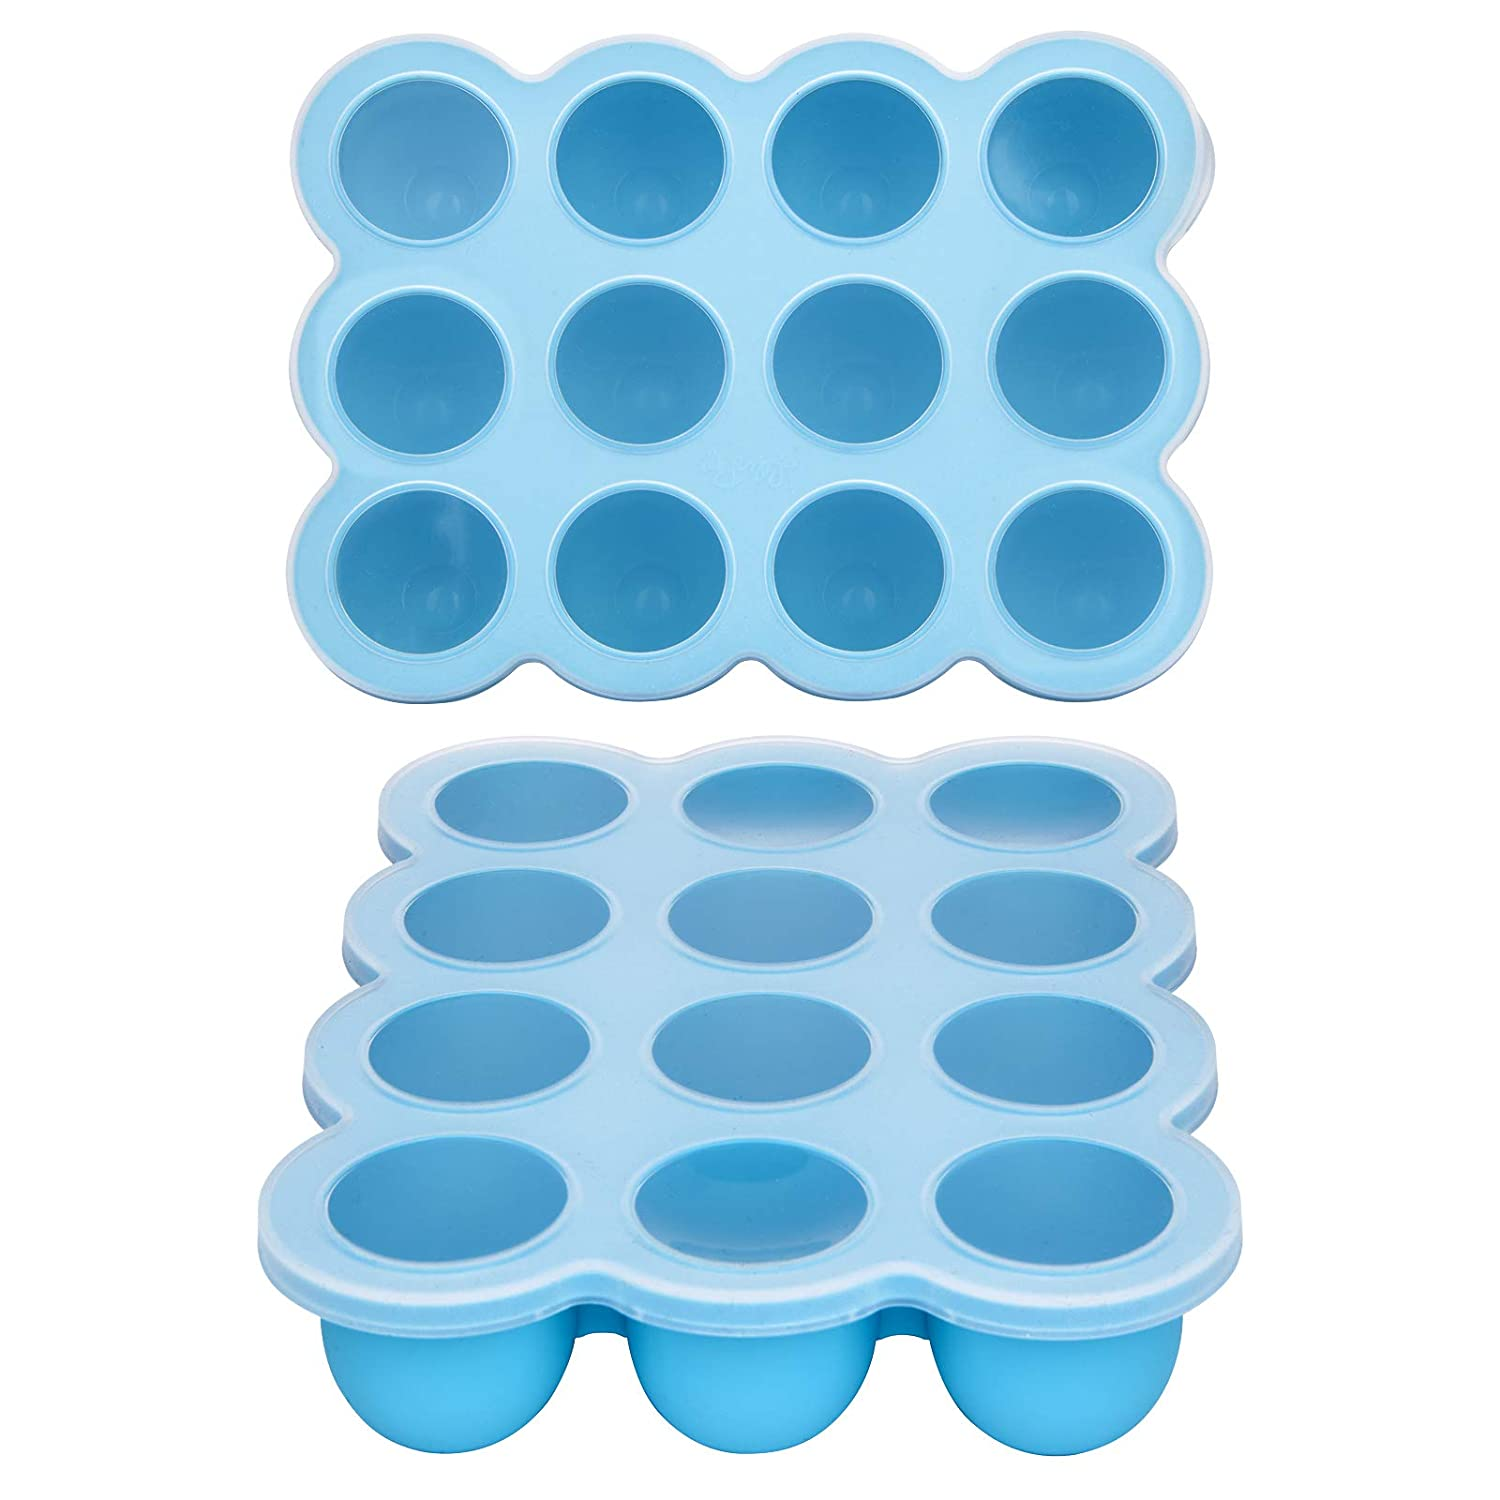 Baby Food Storage Container - 12 Cup Silicone Freezer Tray with Lid,Food Grade Silicone,Perfect Food Container for Homemade Baby Food,Fruit Purees&Vegetables(Blue)